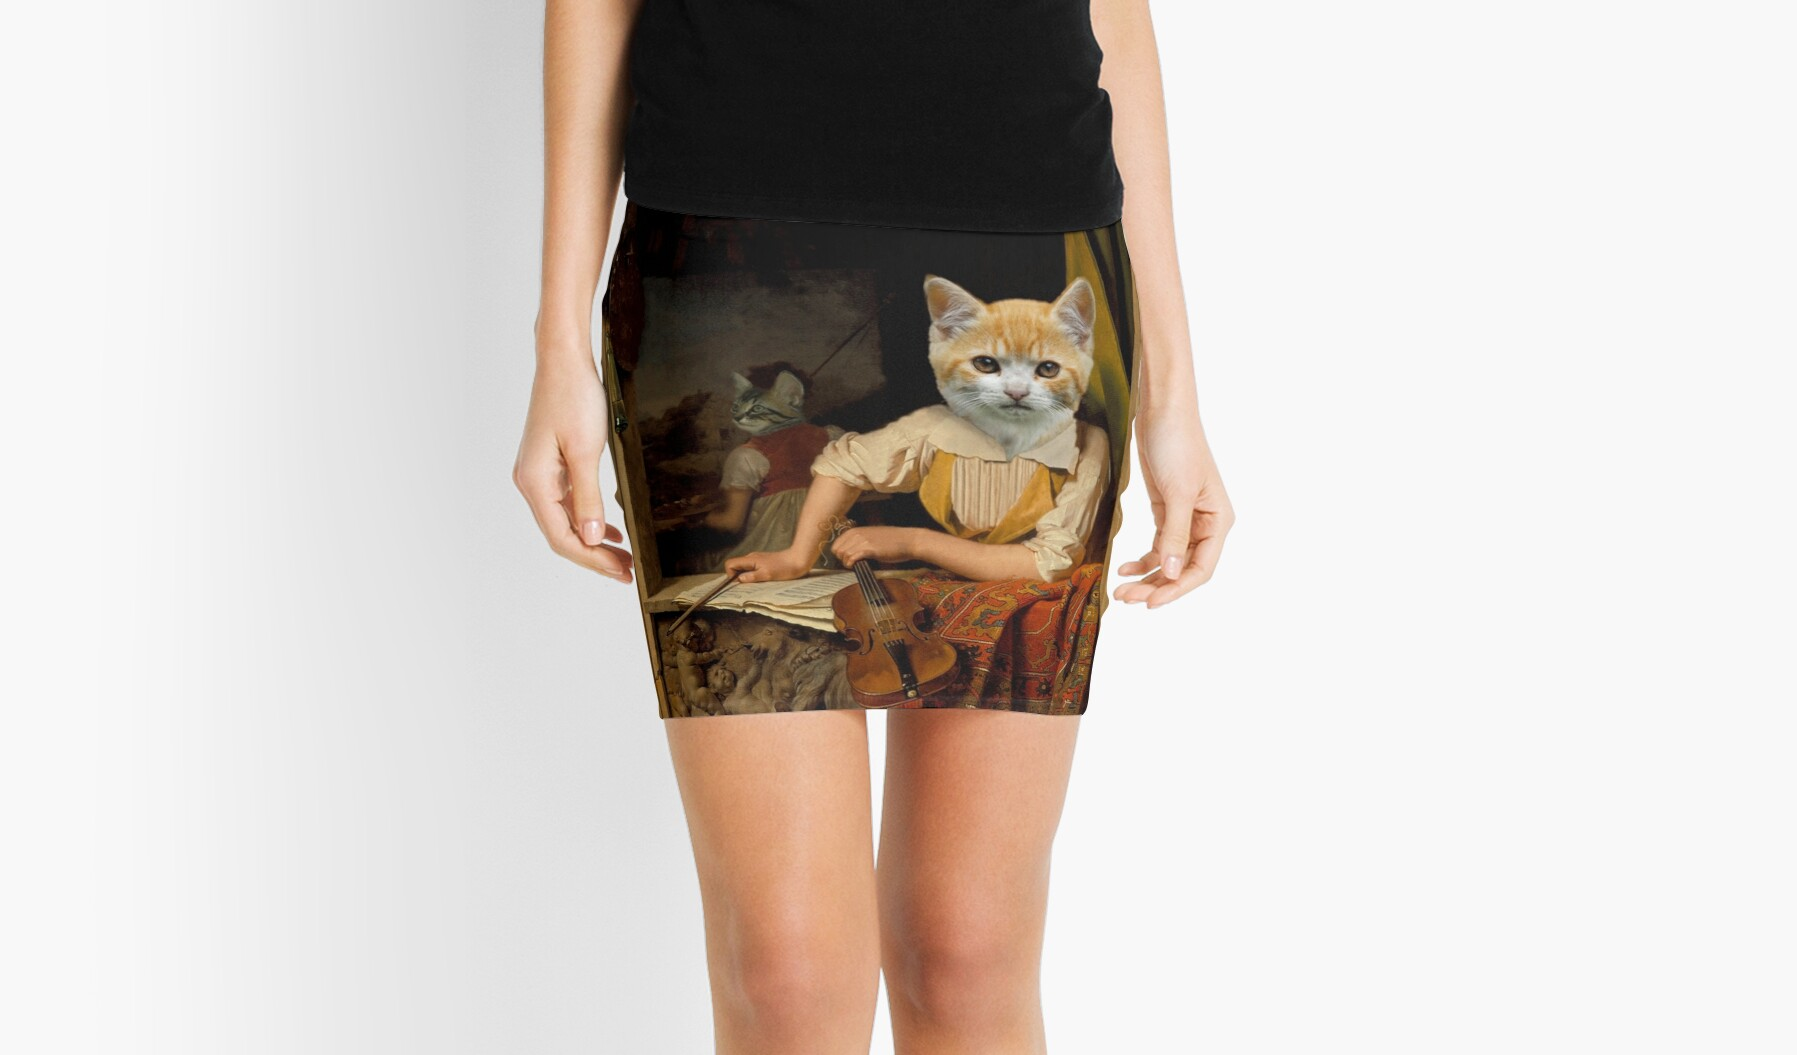 The Kitten Violinist - Anthropomorphic Composite by TheCurators